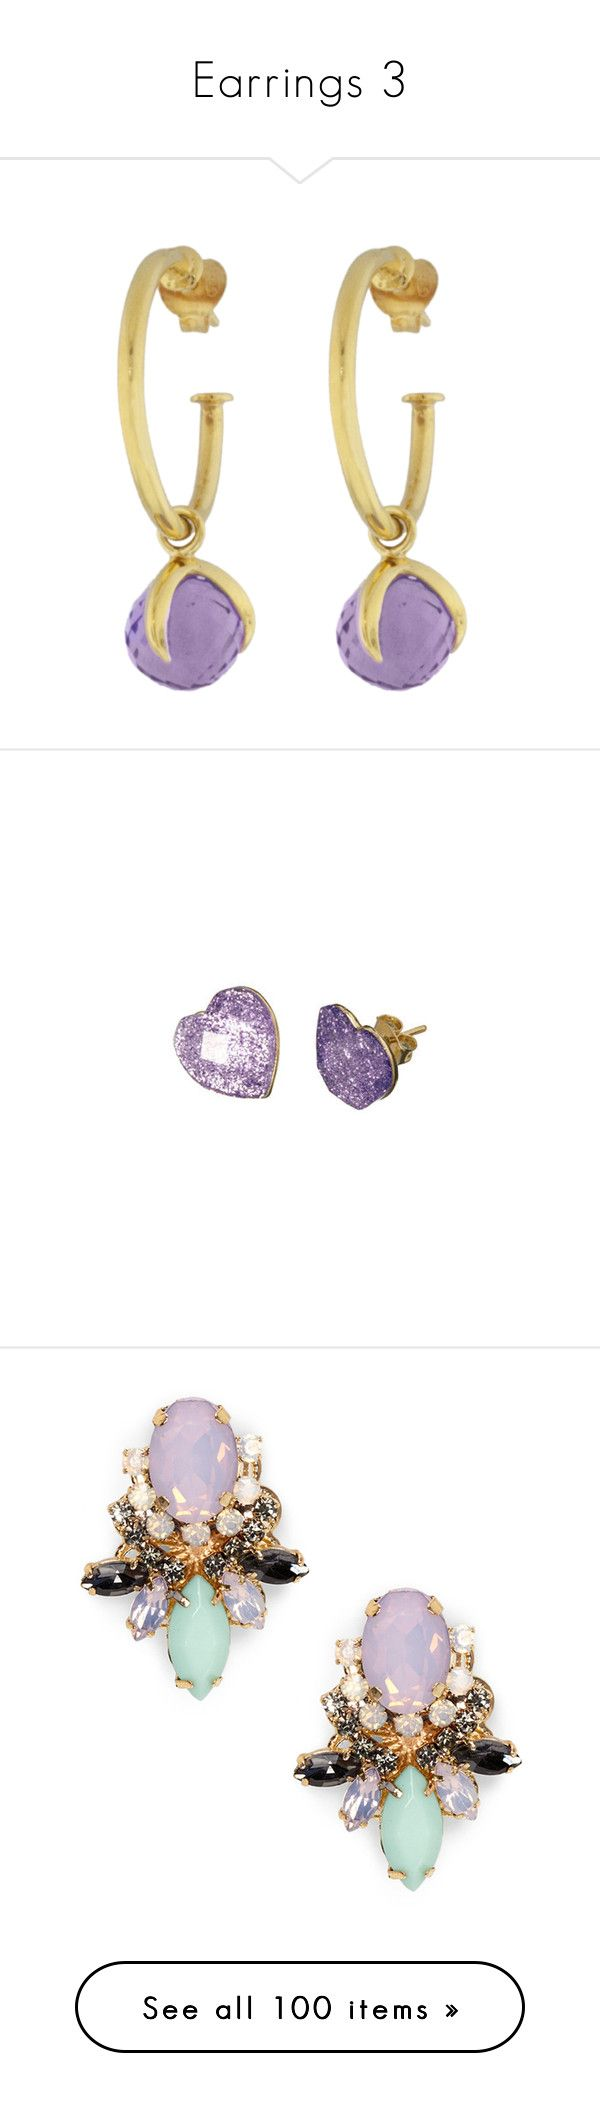 """""""Earrings 3"""" by kiteshop ❤ liked on Polyvore featuring jewelry, earrings, hoop earrings, amethyst hoop earrings, talon earrings, claw jewelry, vermeil earrings, accessories, purple and fillers"""